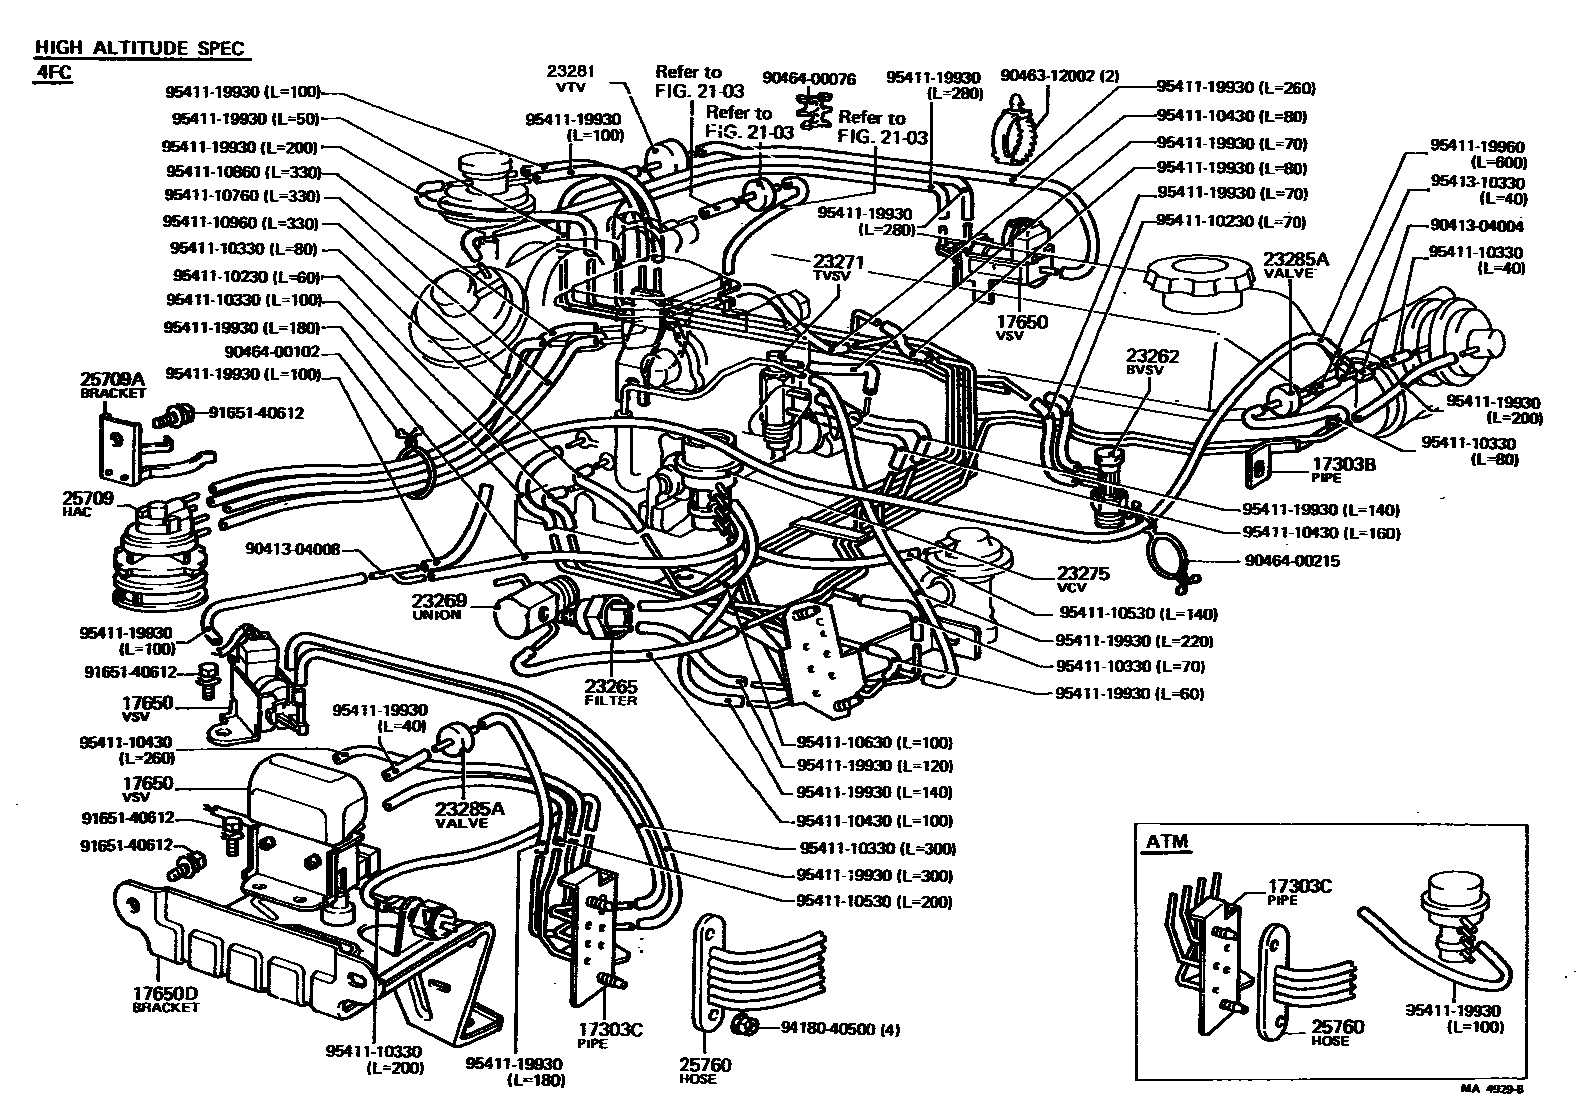 hight resolution of 1999 toyota tacoma 3 4 l v6 engine diagram wiring diagrams scematic toyota t100 v6 engine 1995 toyota t100 3 4l engine diagram